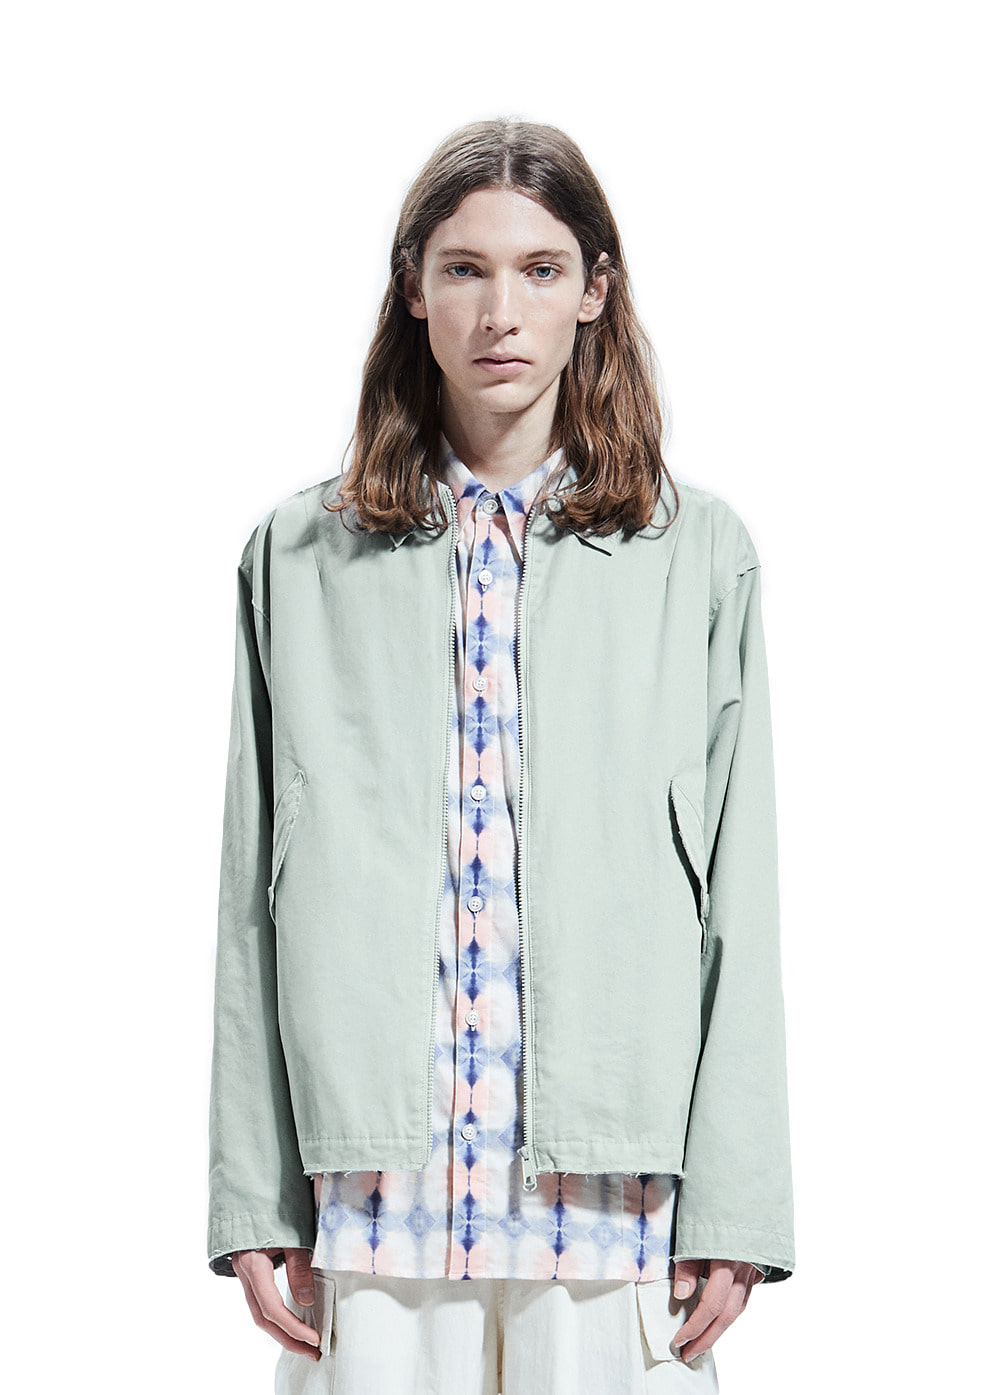 CUT-OFF COLLAR BLOUSON mint gray